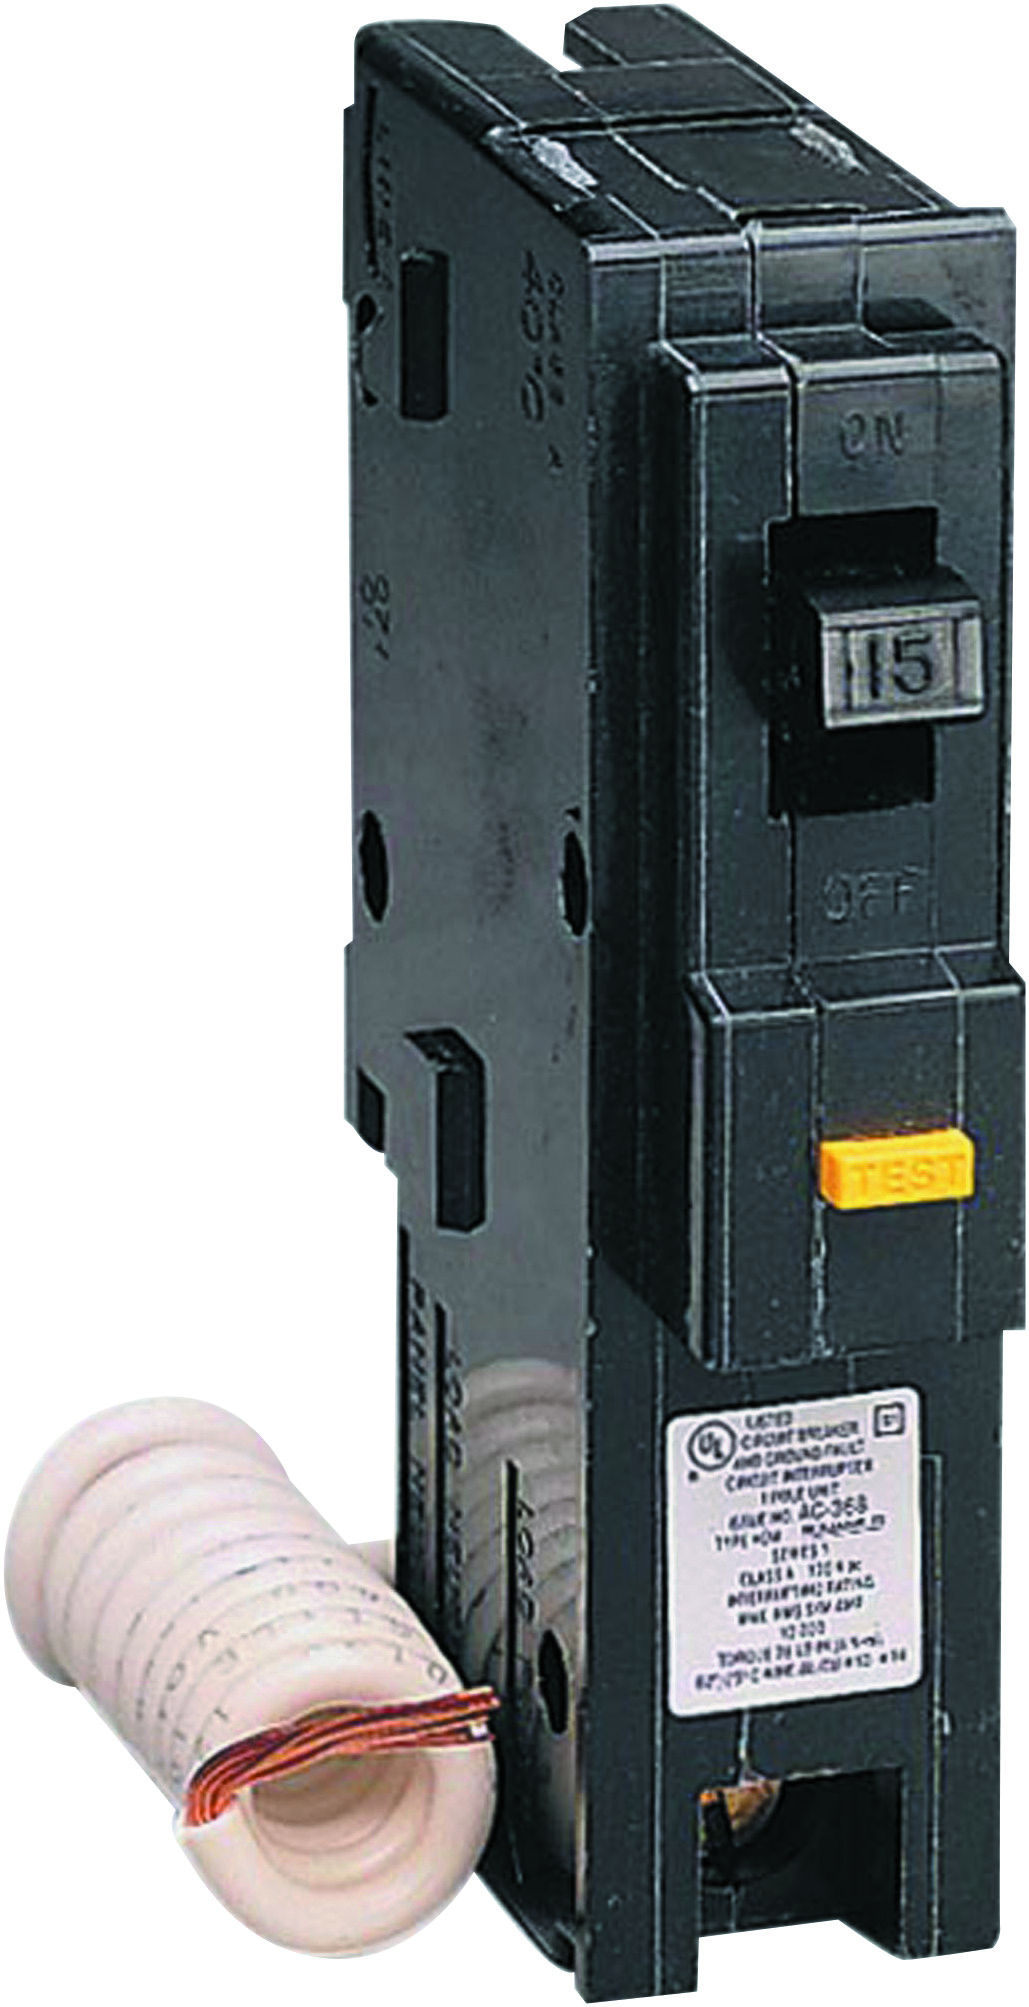 Square D Homeline 60 Amp Gfci Breaker 50 2pole Circuit Breakerhom250gficp The Home Depot Hom115gficp 15 1 Pole Gfc